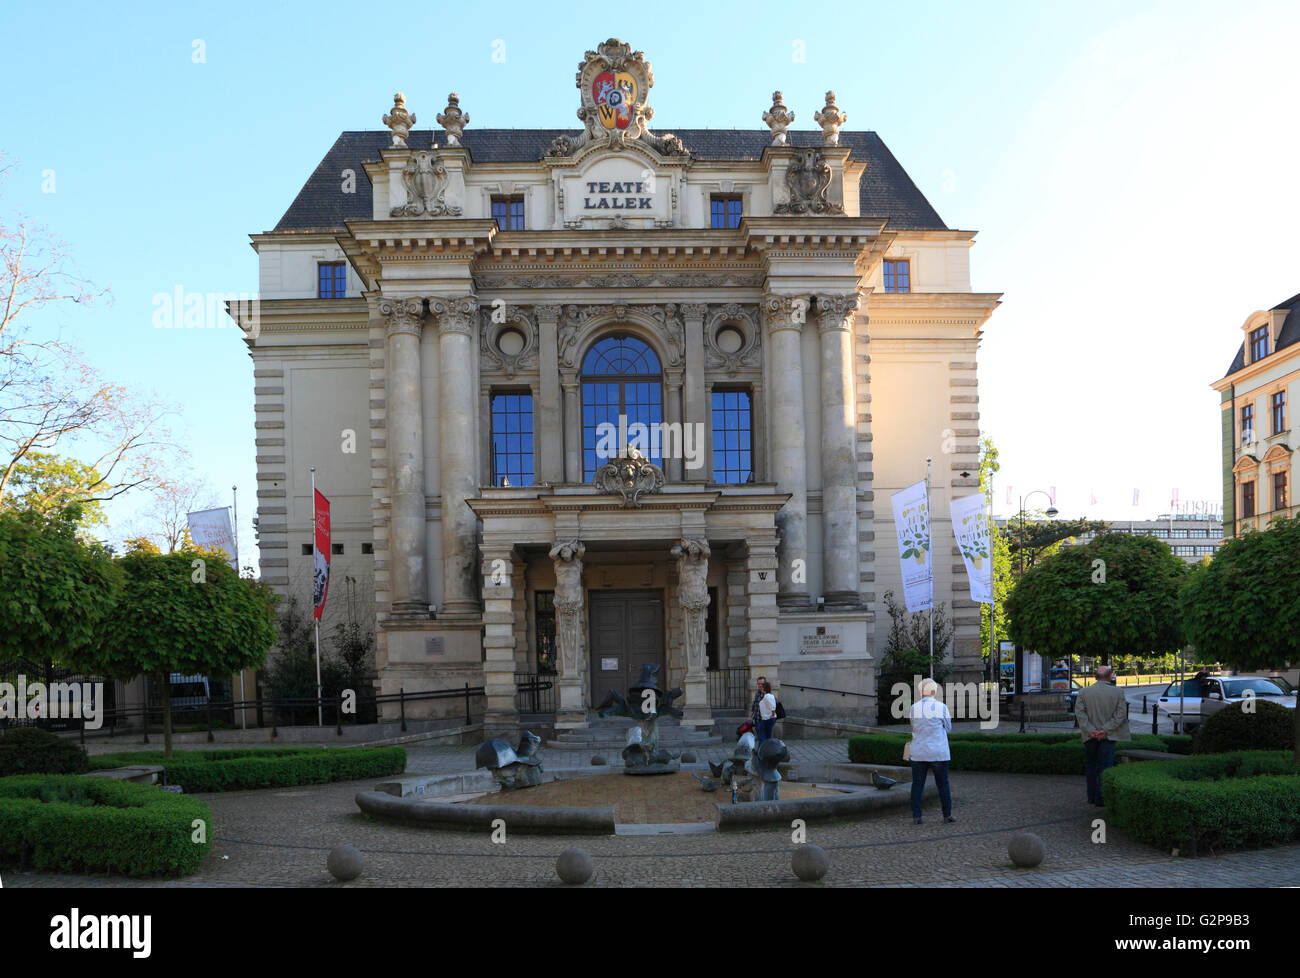 Theater Lalek, Wroclaw, Silesia, Poland, Europe - Stock Image